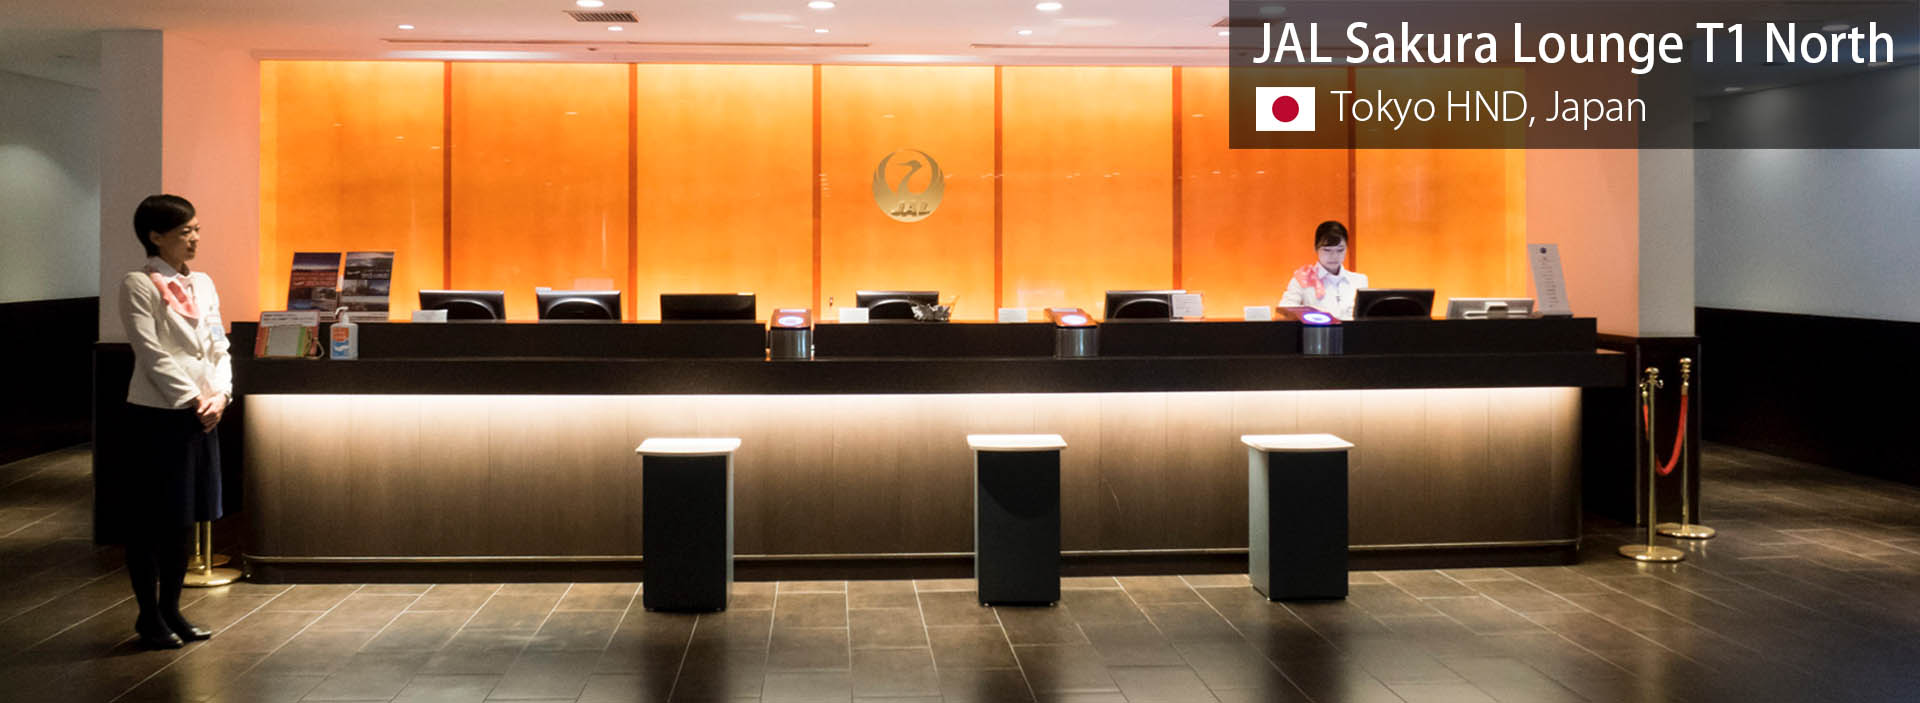 Review: JAL Sakura Lounge Domestic Terminal 1 North at Tokyo Haneda